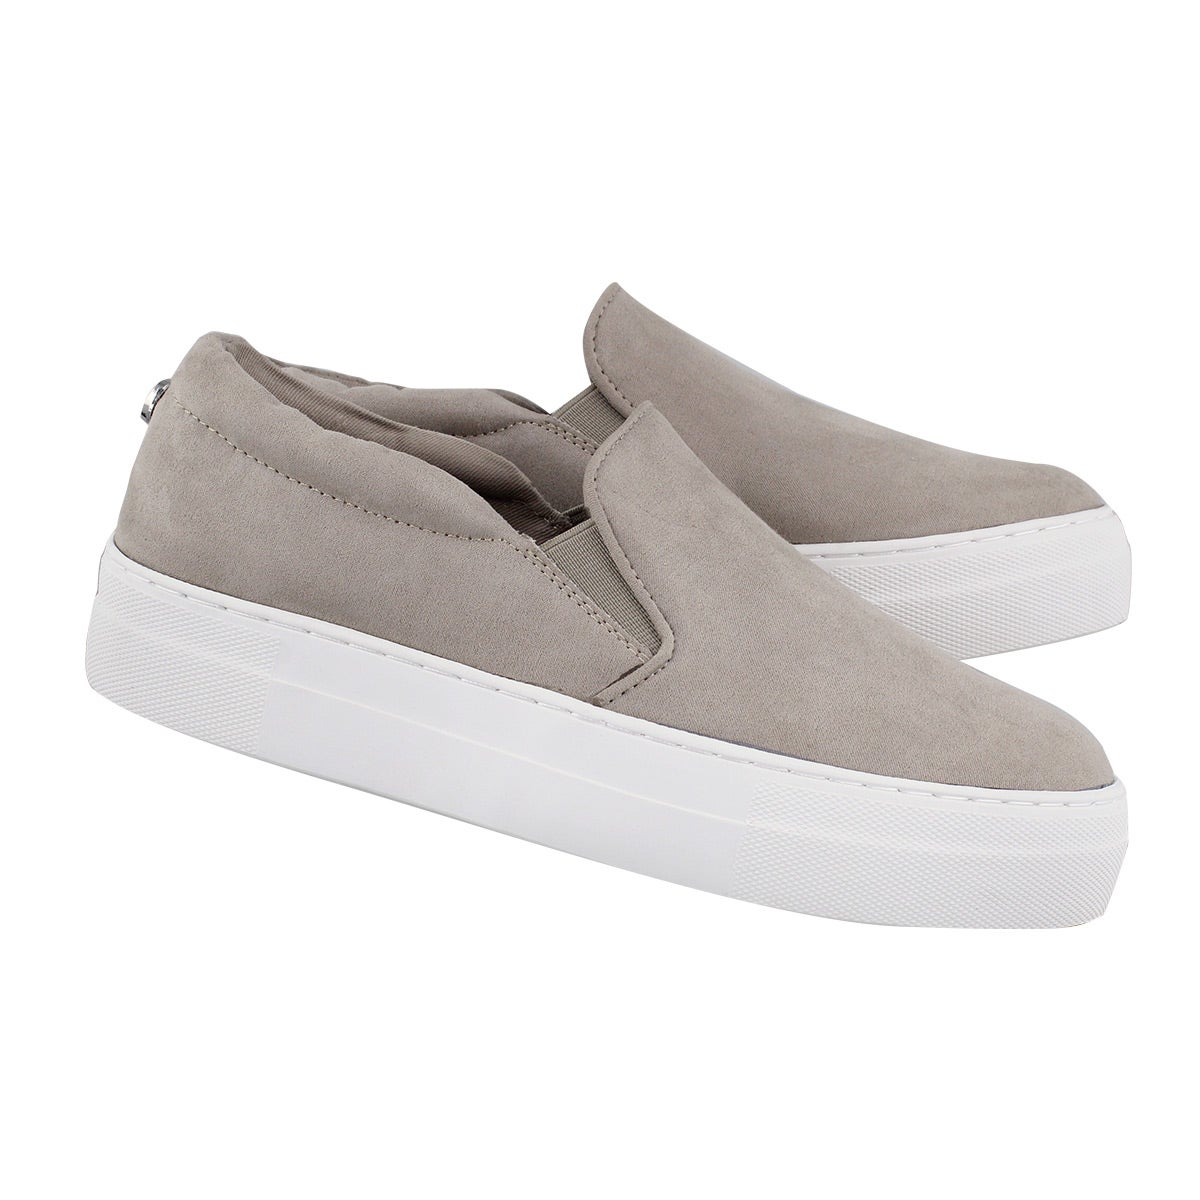 Lds Gills sand casual slip on shoe